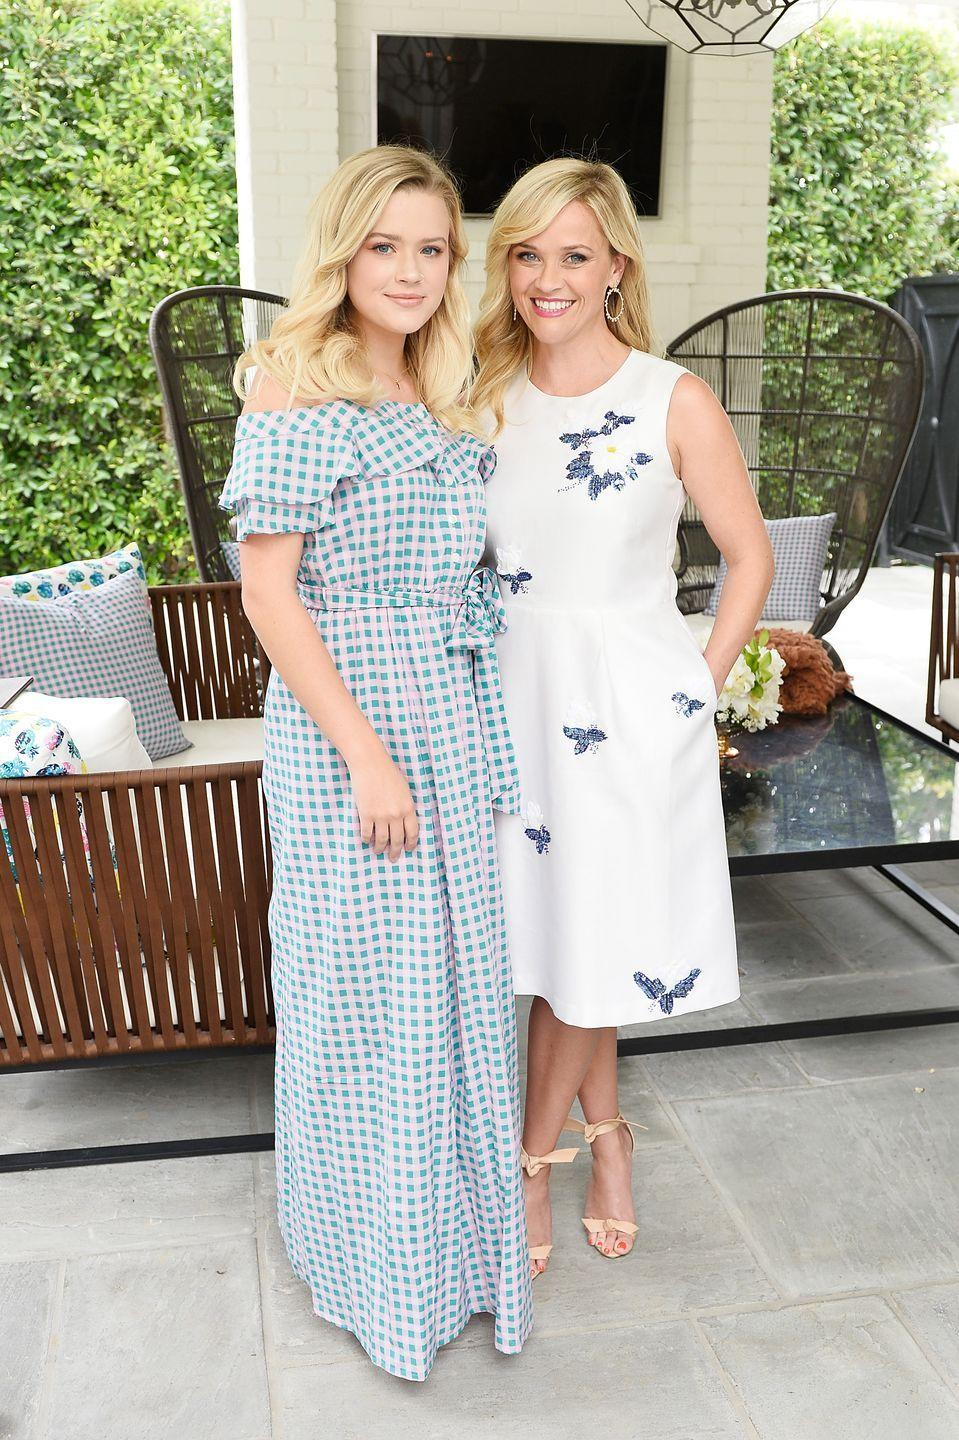 <p>Reese Witherspoon's eldest child with Ryan Phillippe, Ava Phillippe, looks like an exact clone of her actress mom. The 20-year-old shares the same facial features and blond hair, and is similarly making a foray into the world of acting and modeling. </p>